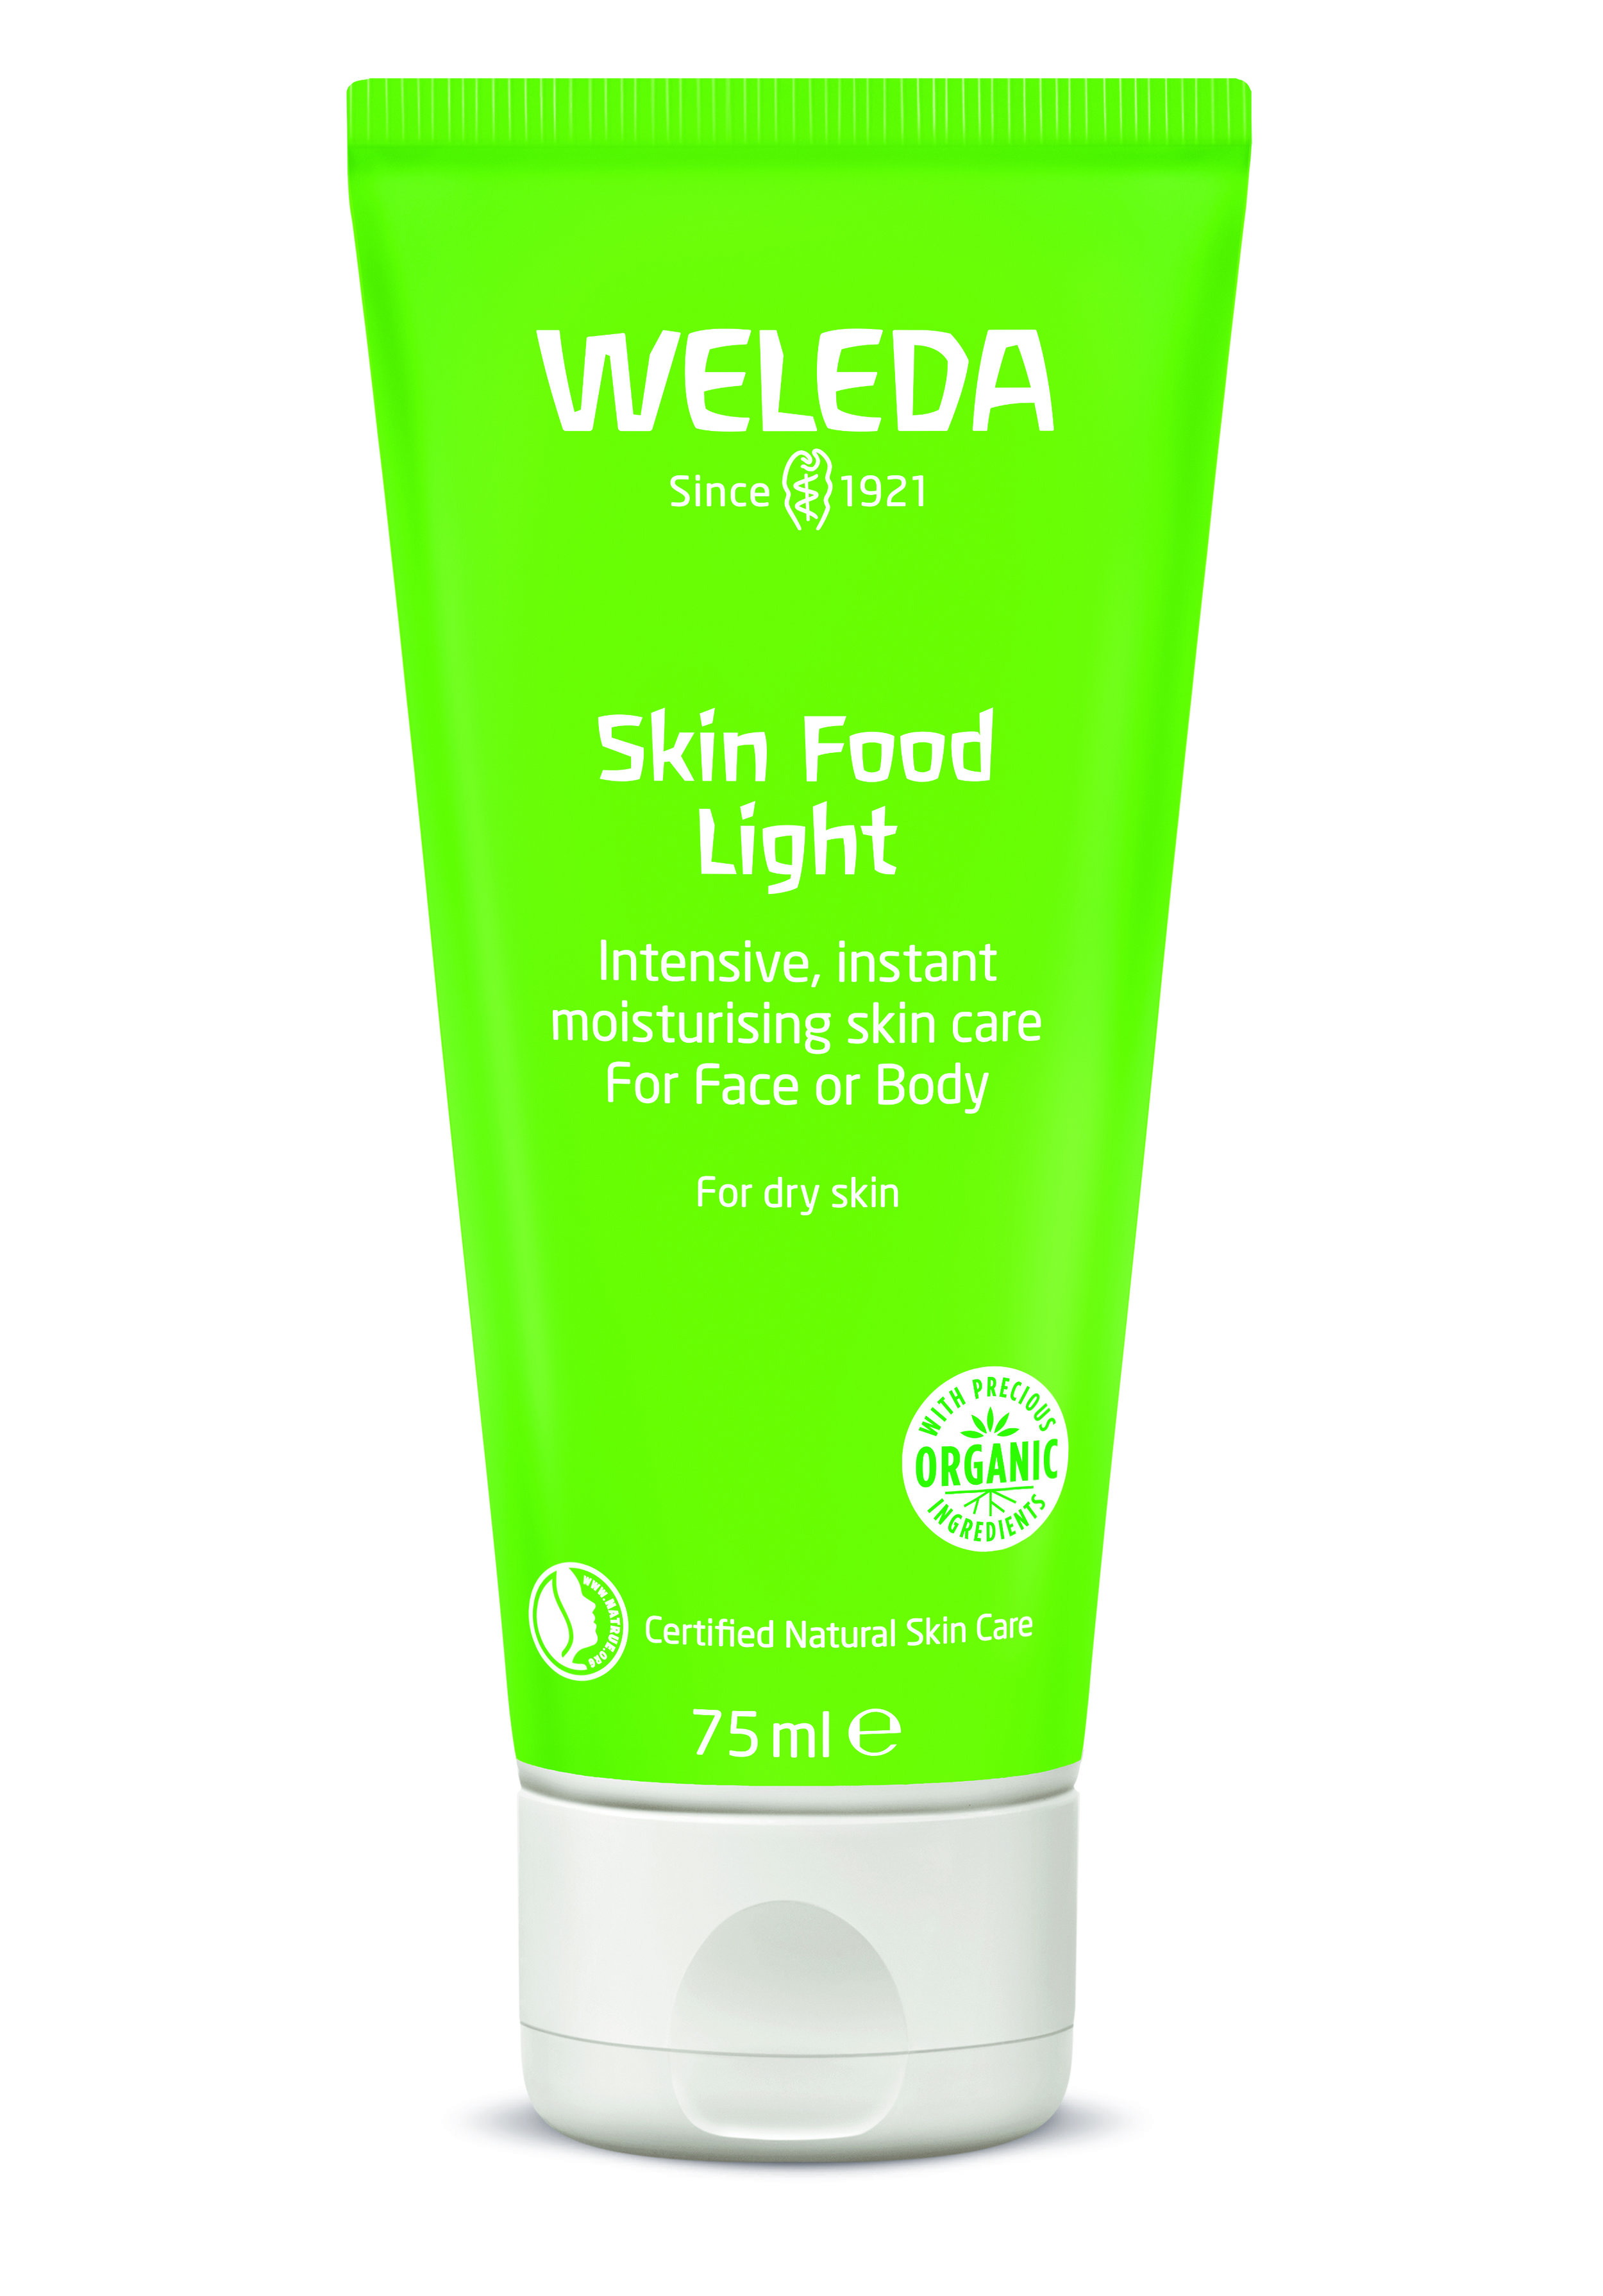 Weleda's new Skin Food Light